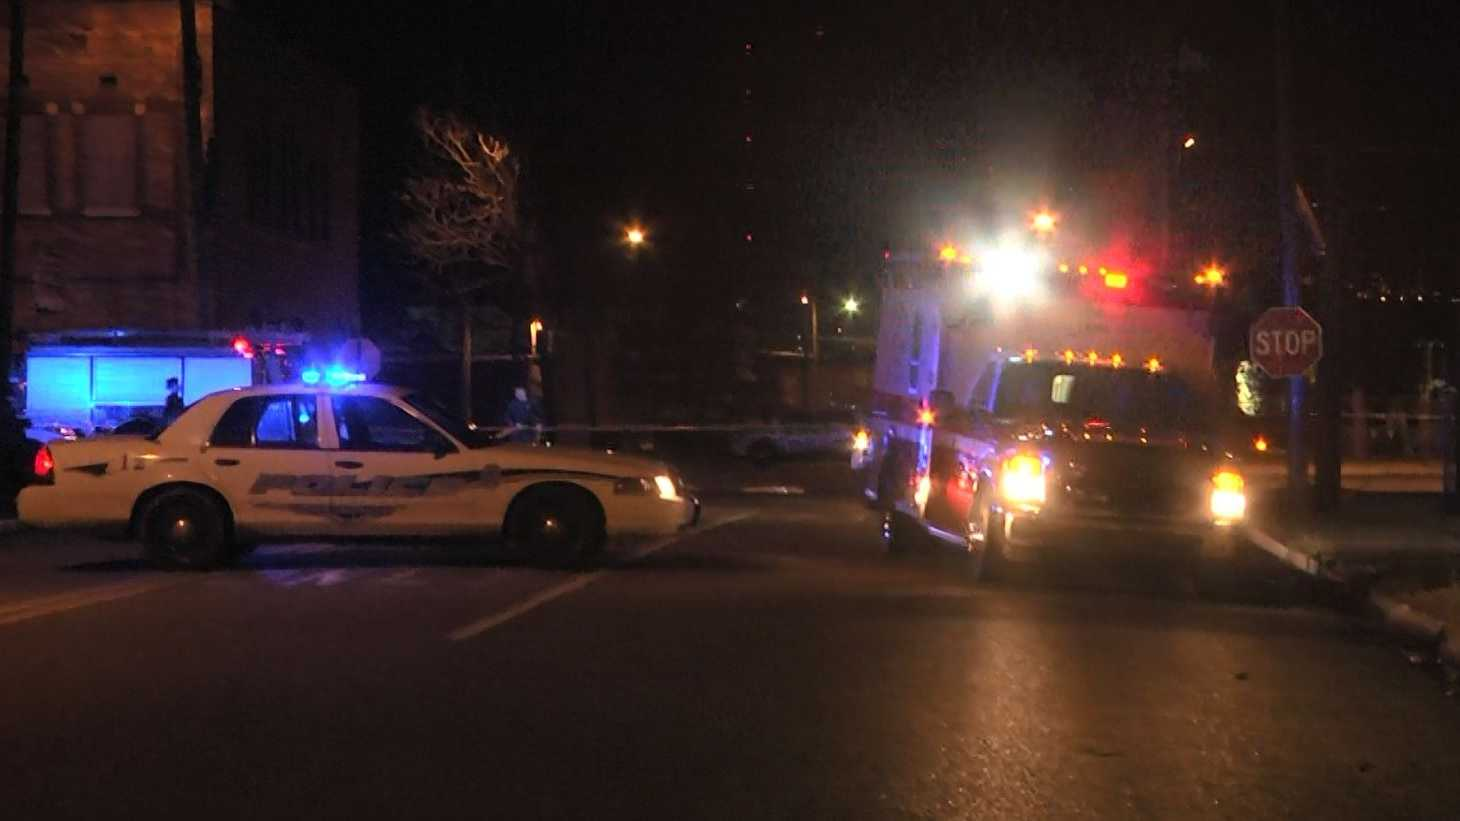 A pedestrian was struck and killed just after 5:30 p.m. Saturday in Birmingham.